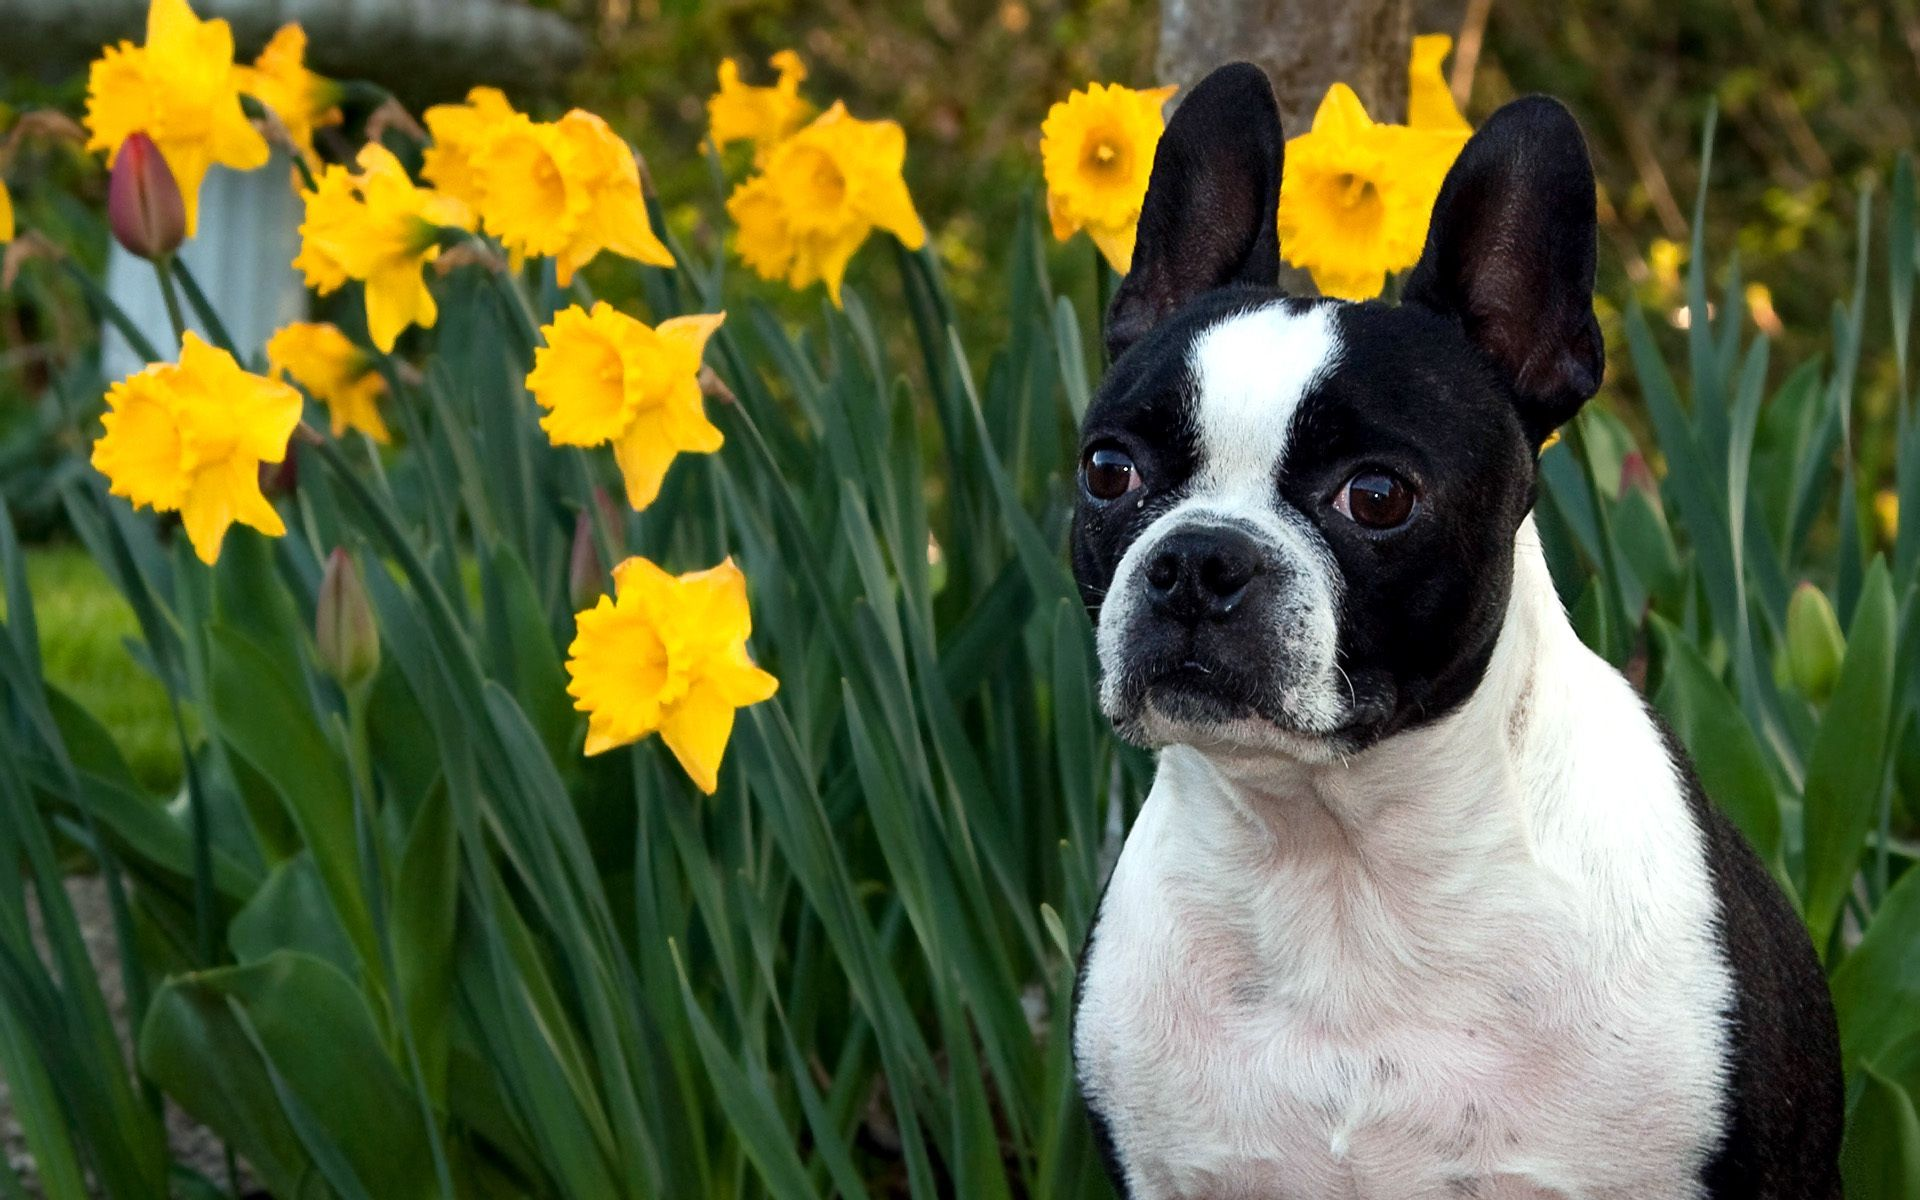 Boston Terrier Wallpaper Free Download - wallpaper.wiki